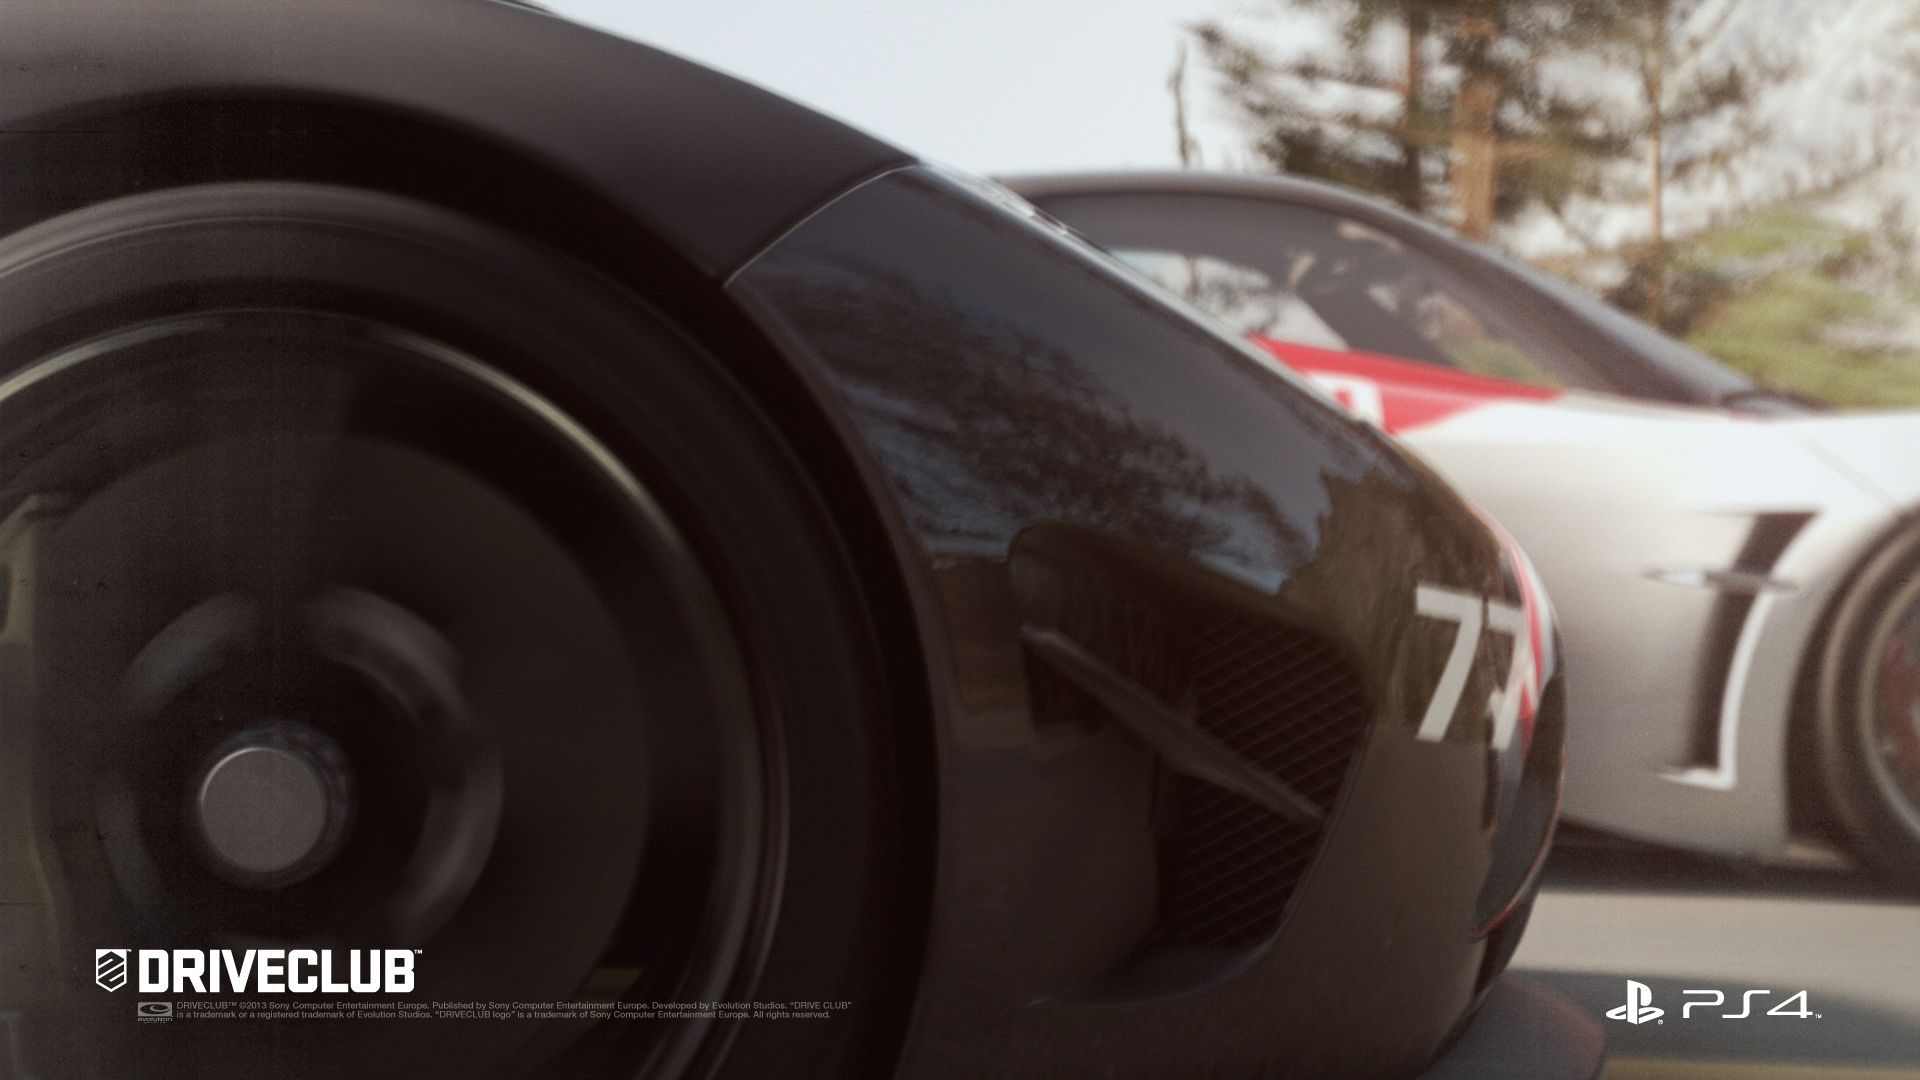 DriveClub (PS4) - 10